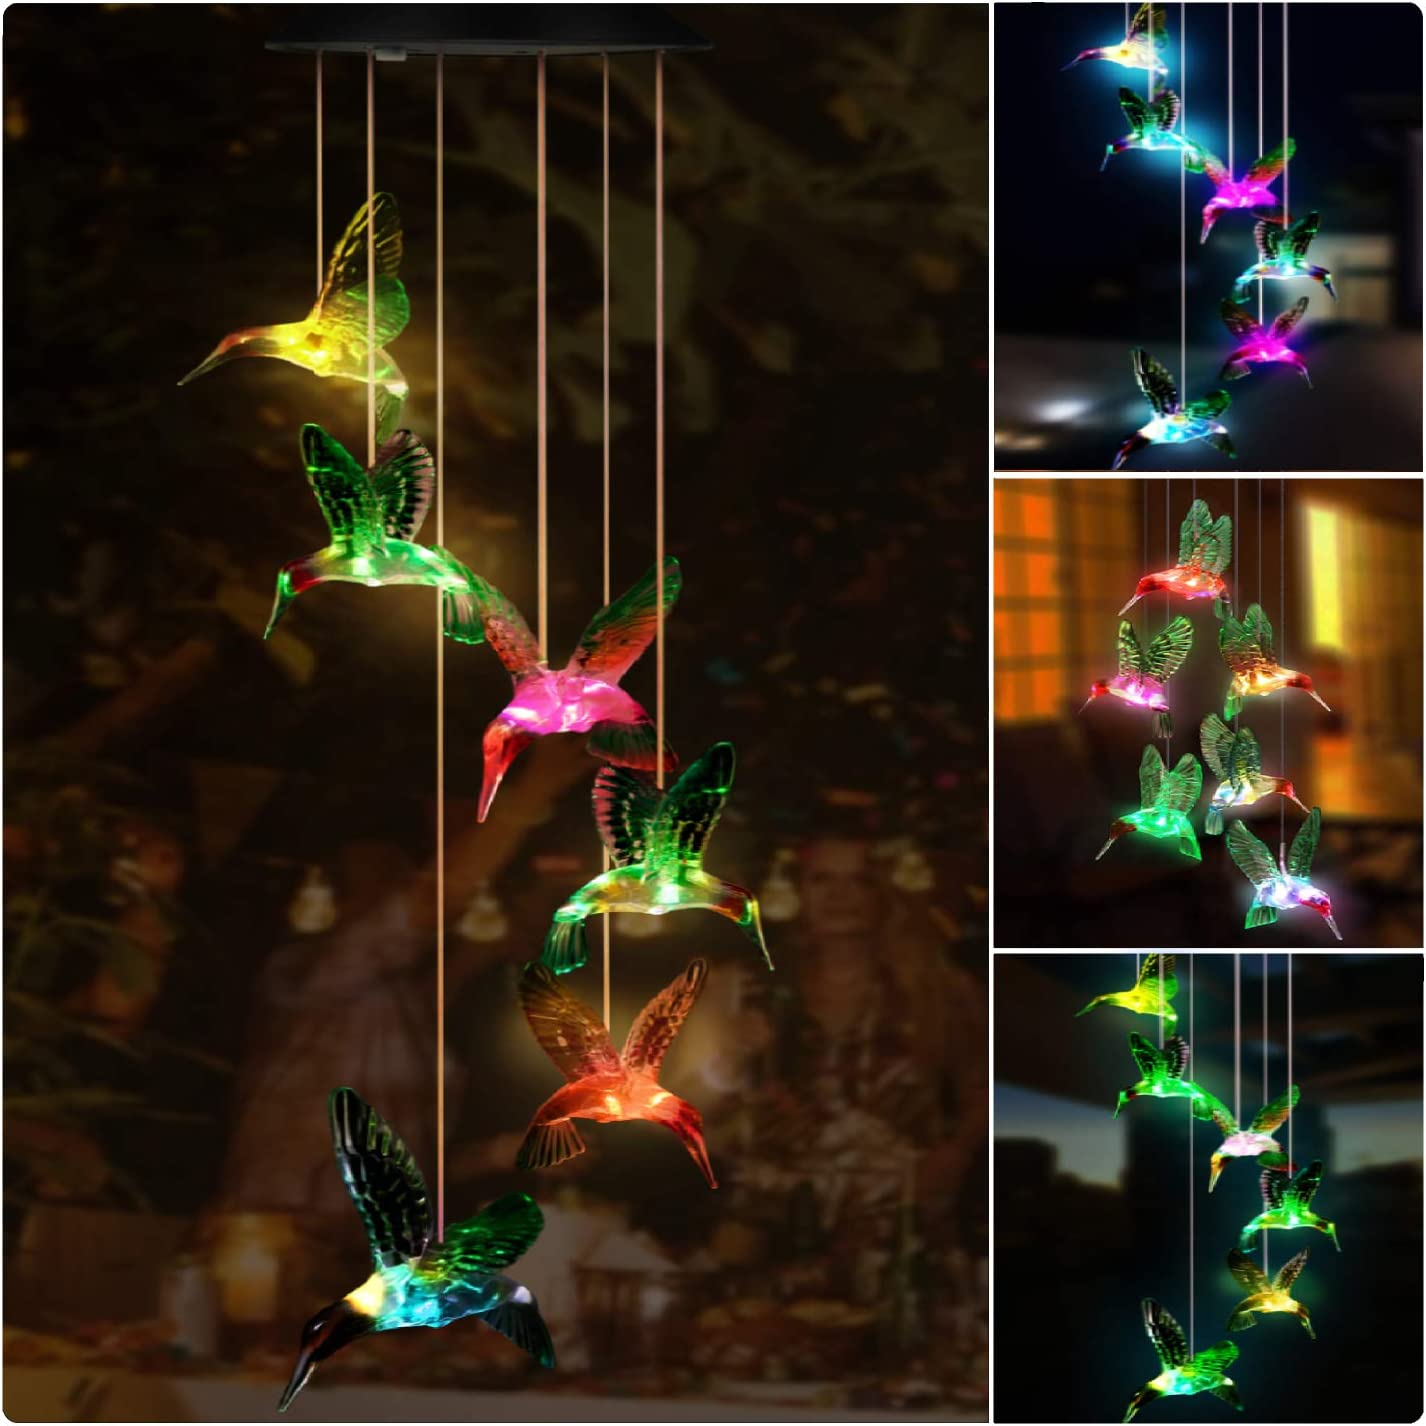 Kohree Solar Hummingbird Wind Chime, LED Color Changing Hummingbird Solar Lights Outdoor Hanging Solar Powered Wind Chimes Waterproof for Garden, Party, Thanksgiving, Festival Decor